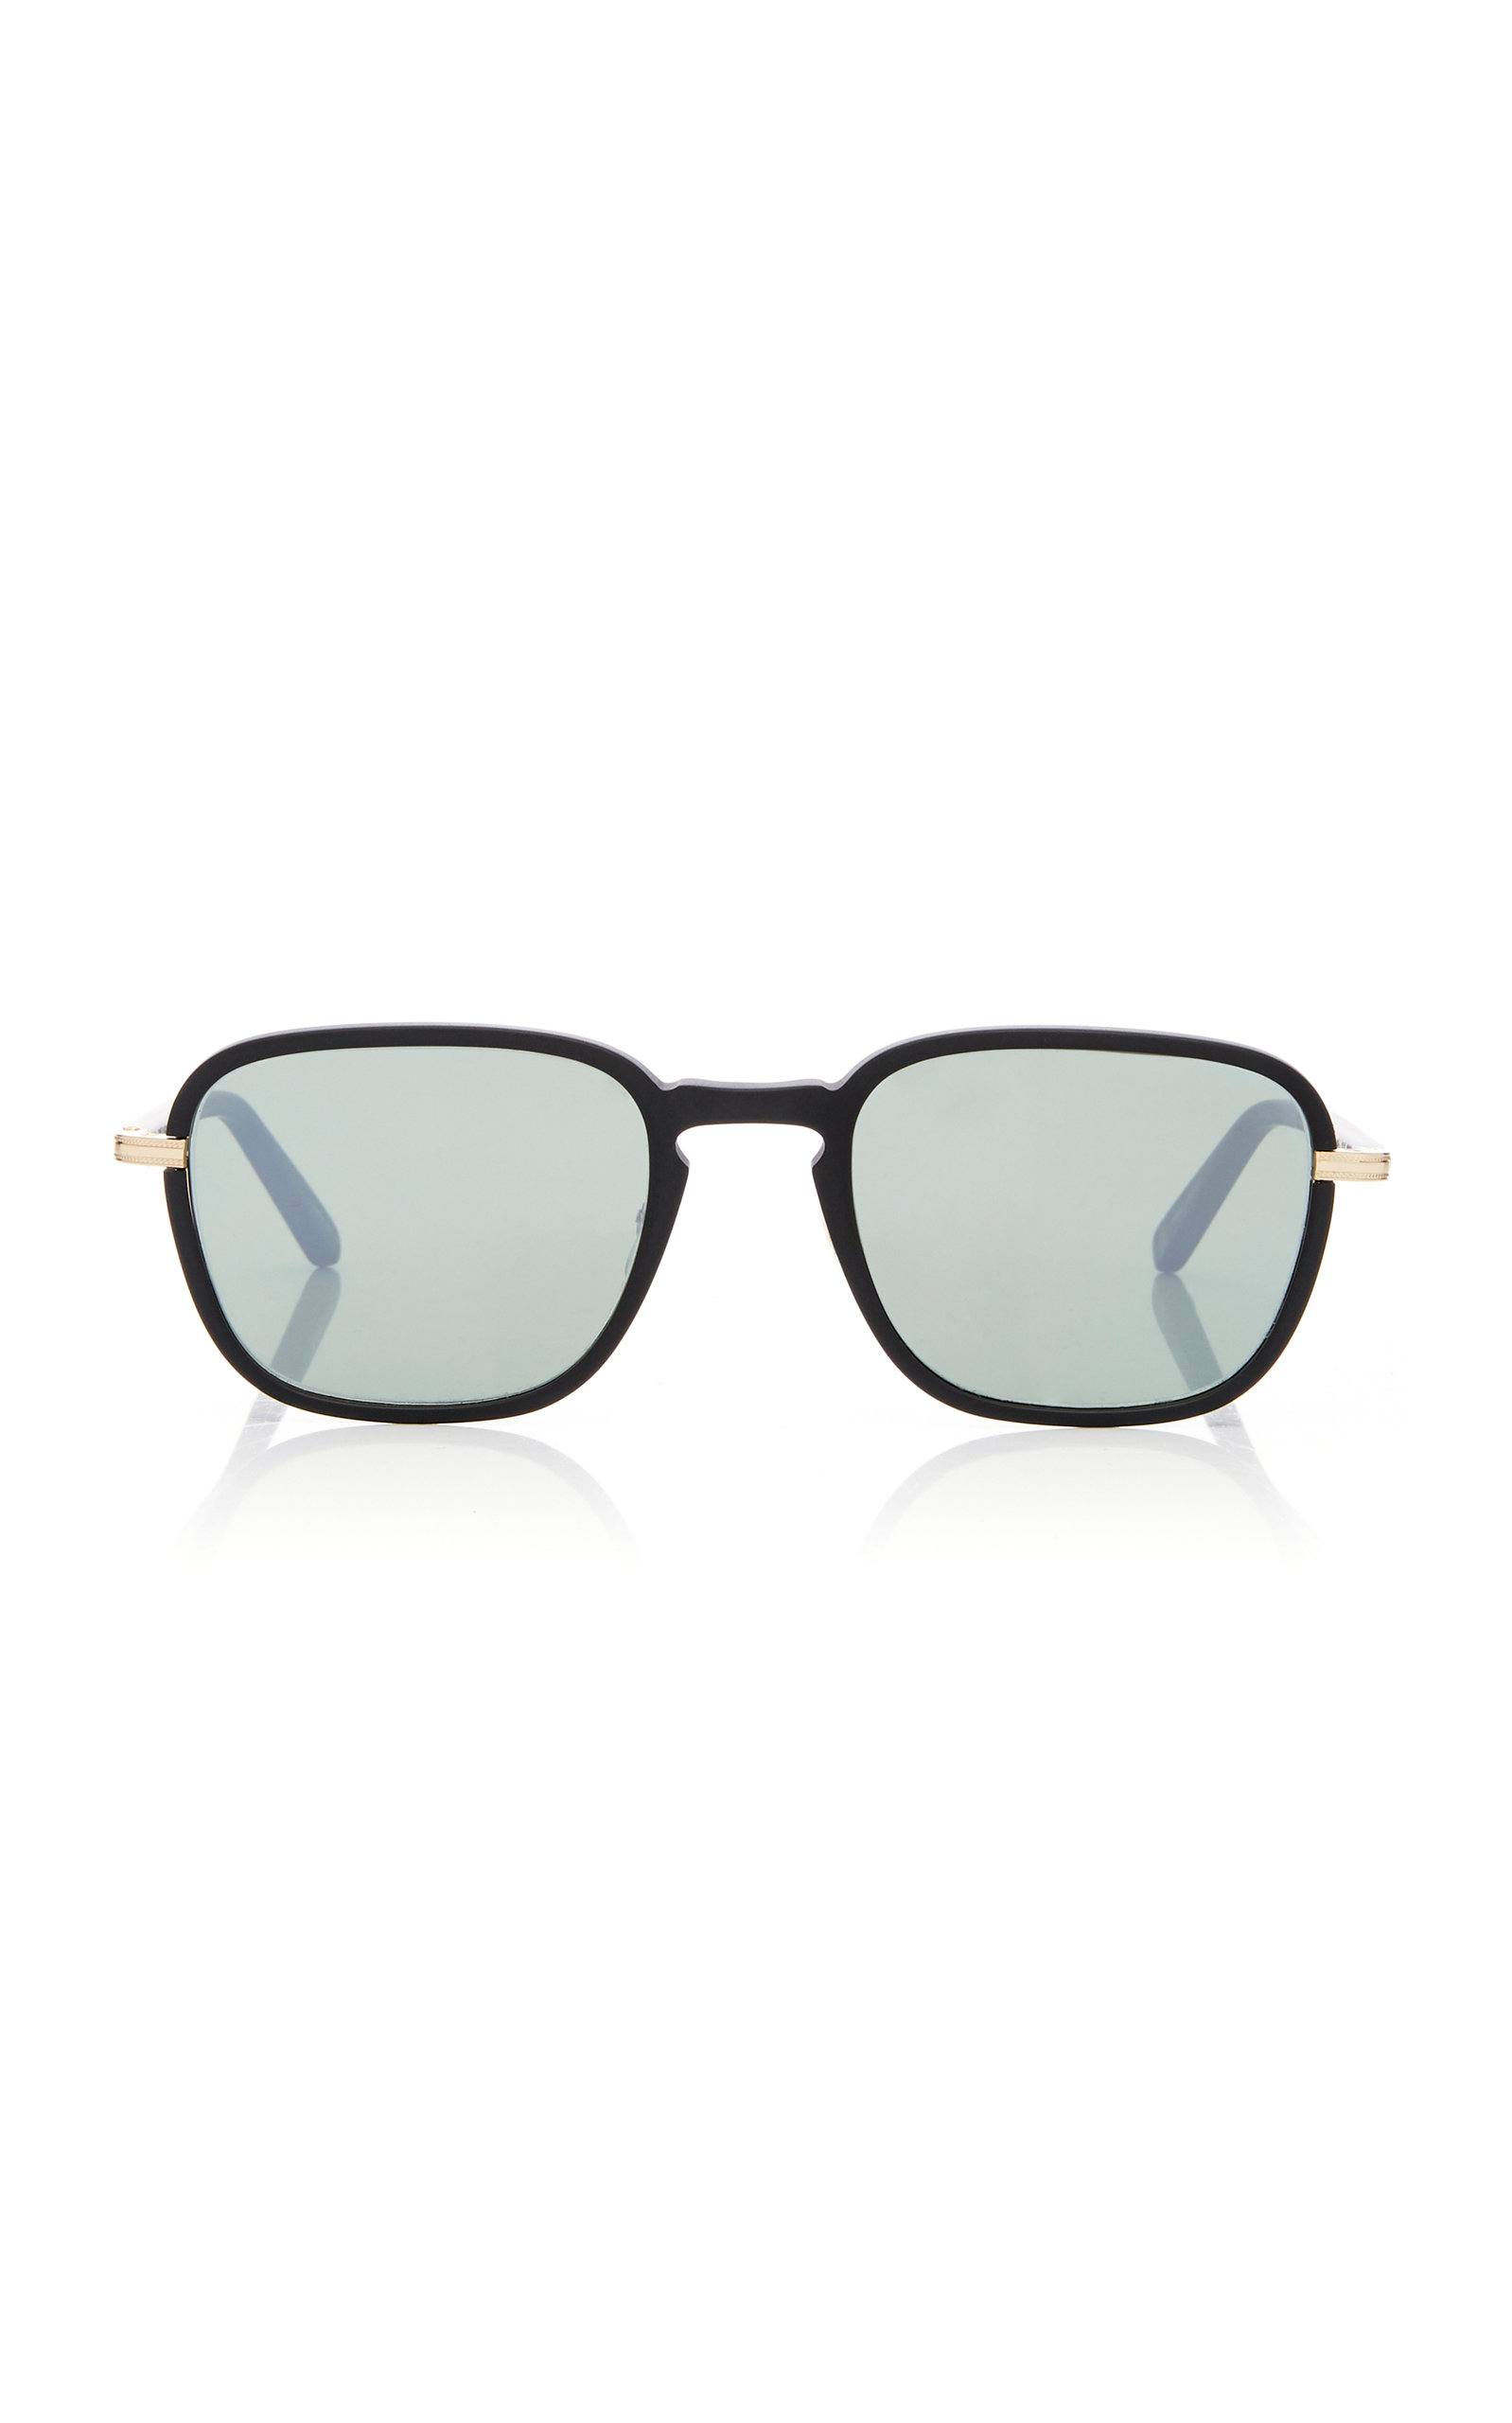 874cc32b45 Pier 50 Square-Frame Acetate Sunglasses by Garrett Leight